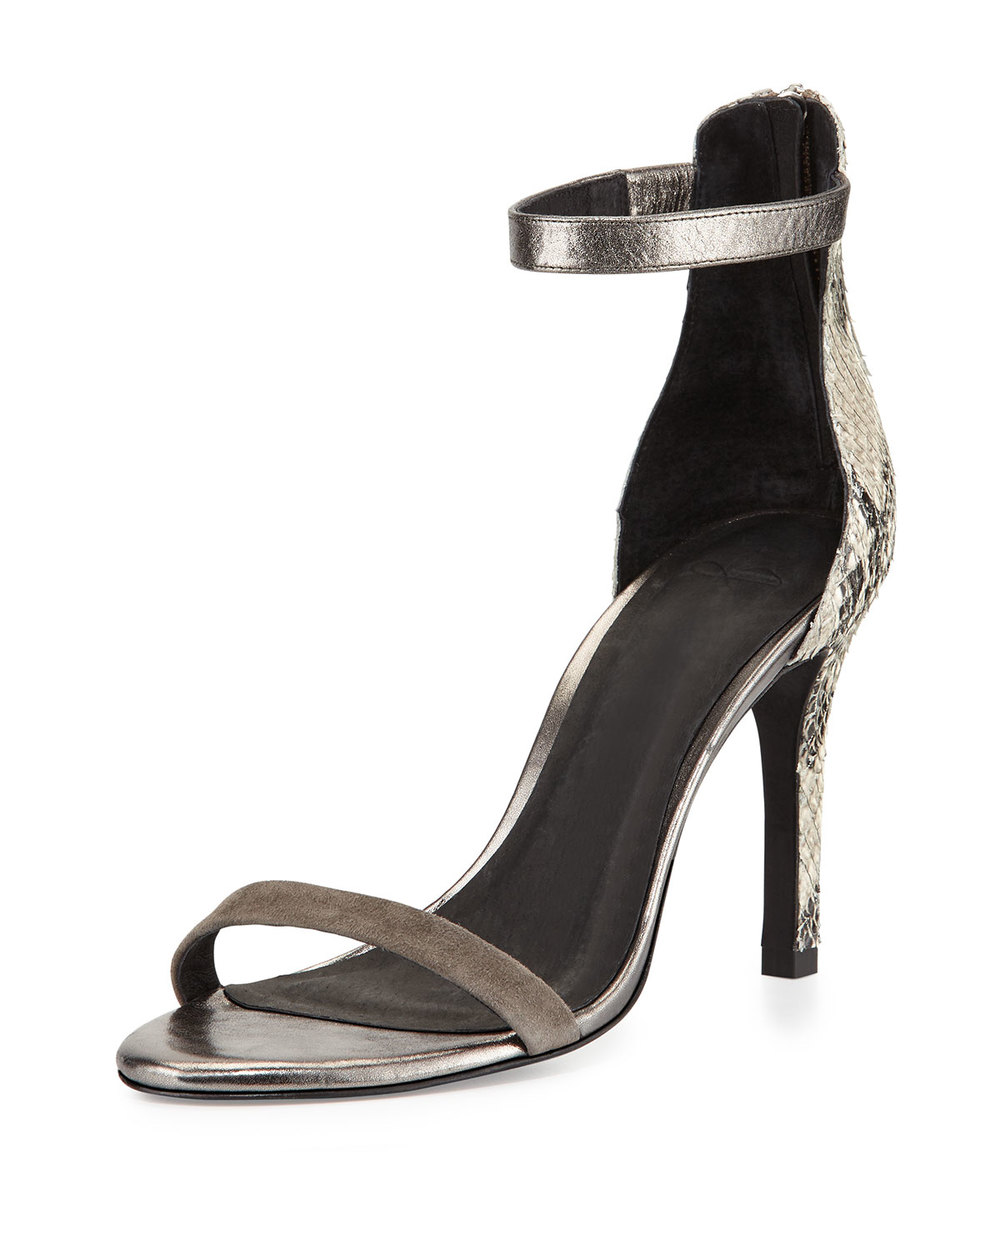 Joie Abbot Mixed-Print d'Orsay Sandal, Pewter/Cinder • $117.60 • Neiman Marcus